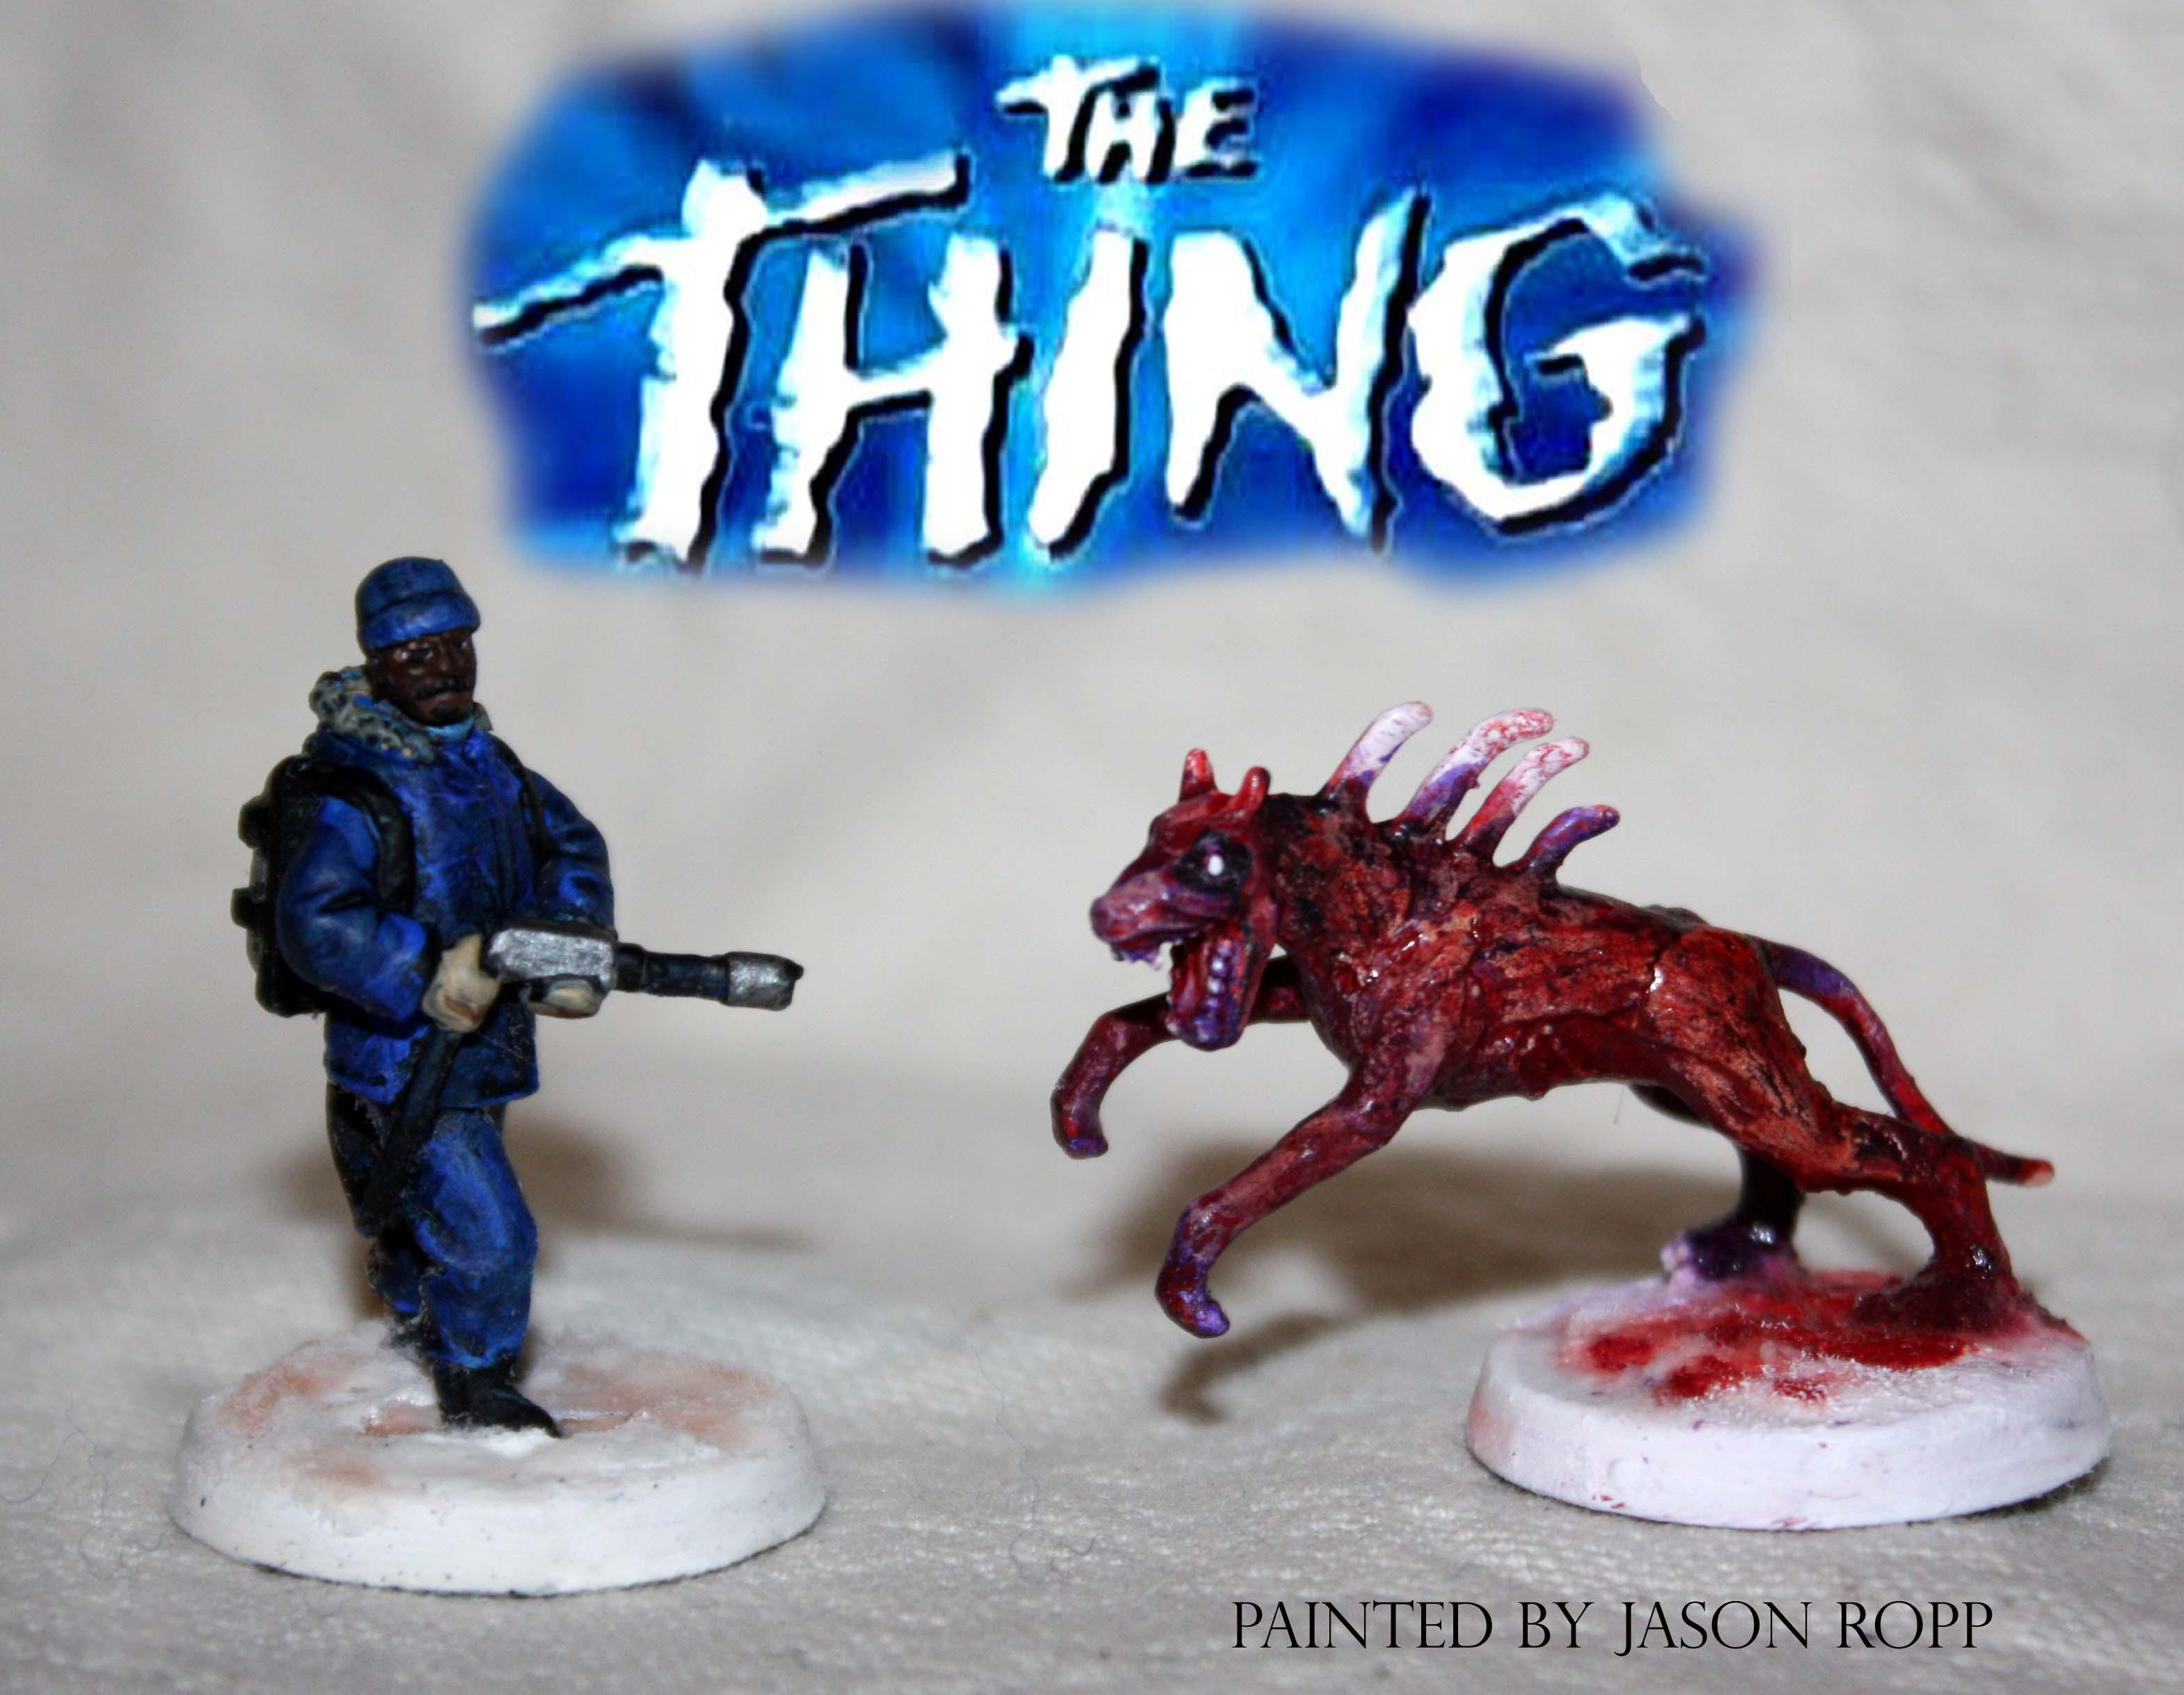 28mm, Alien, Alines Vs Predator, Avp, Conversion, Dog, From Another World, Horrorclix, Miniature, Miniatures, Monster, The Thing, Thing, Things, Wargame, Warhammer 40,000, Weird